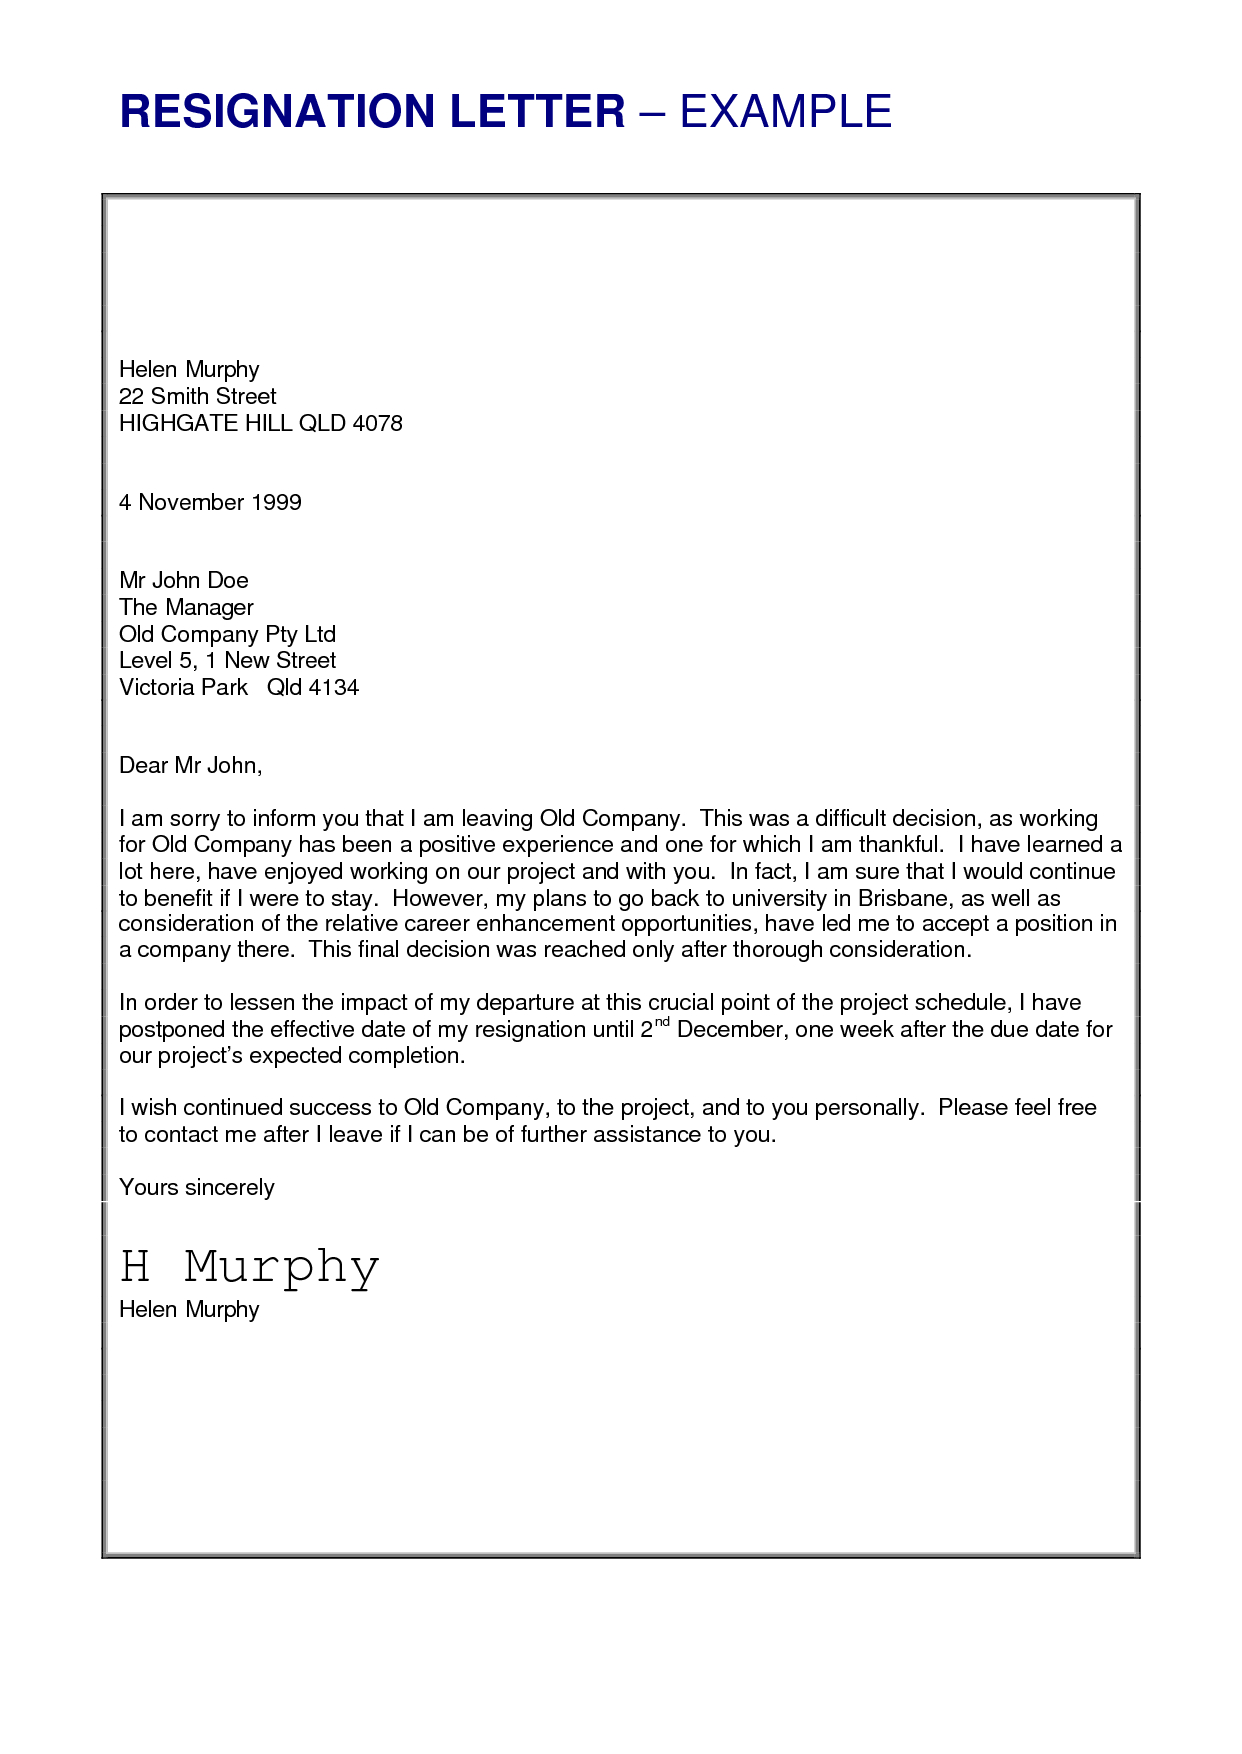 Official Letter Of Resignation Template - Job Resignation Letter Sample Loganun Blog